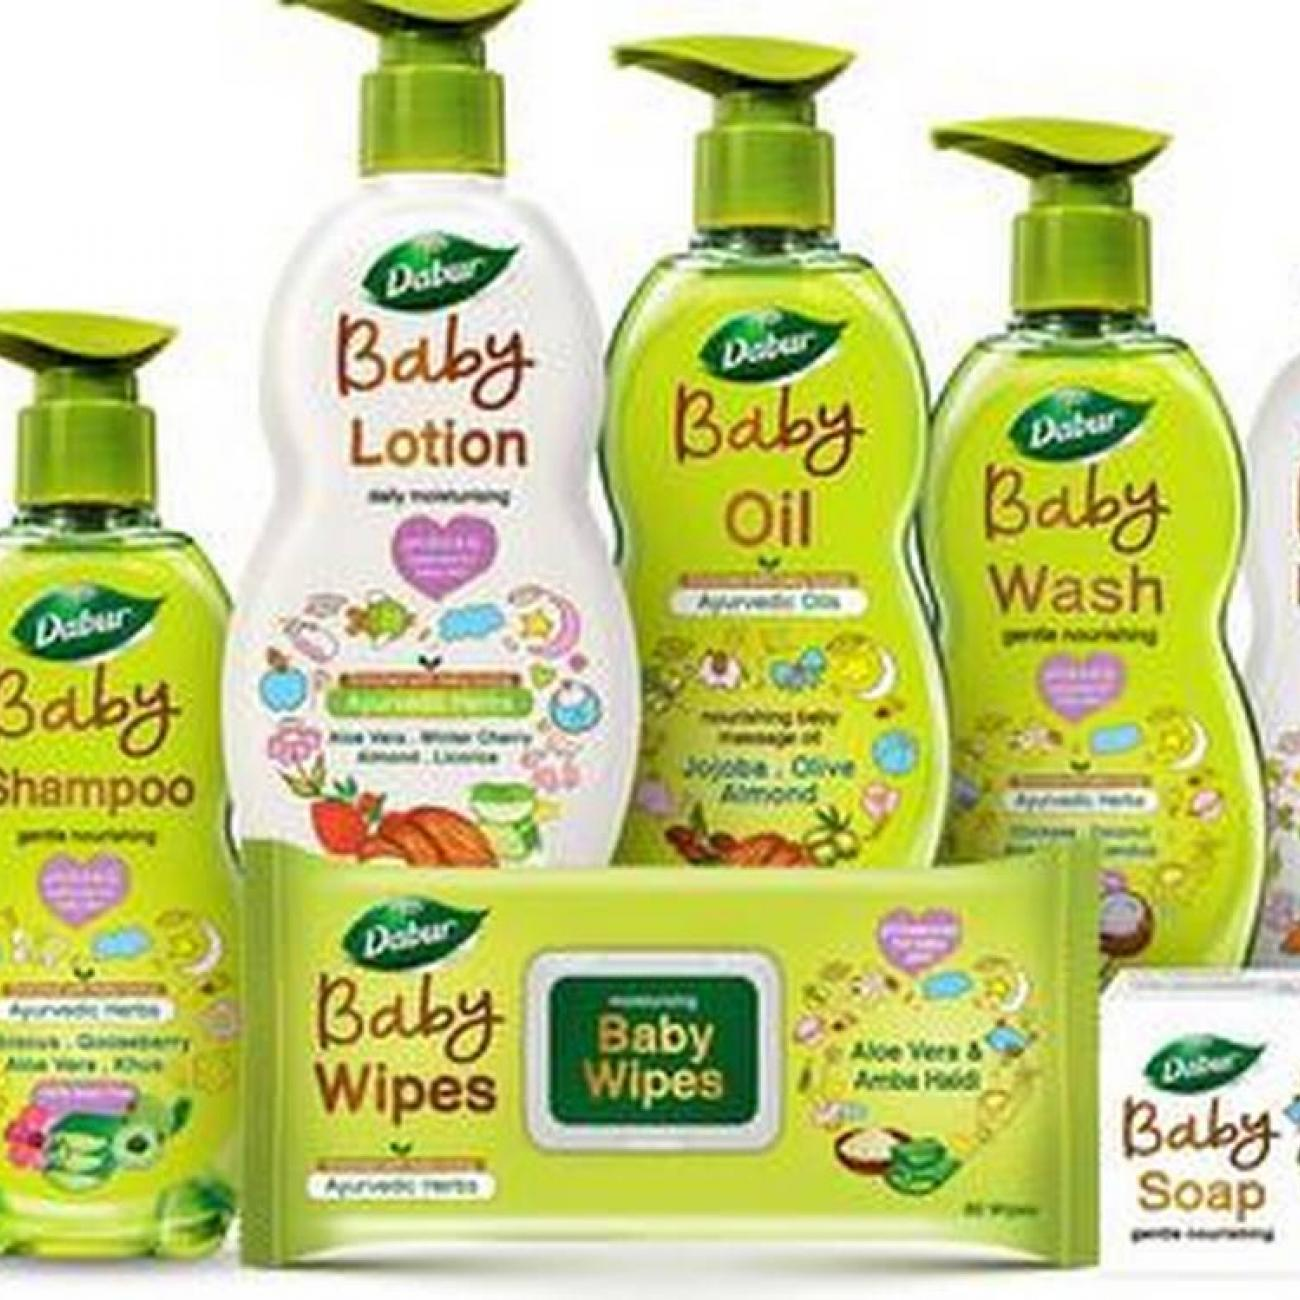 Dabur_Baby_Care_Products